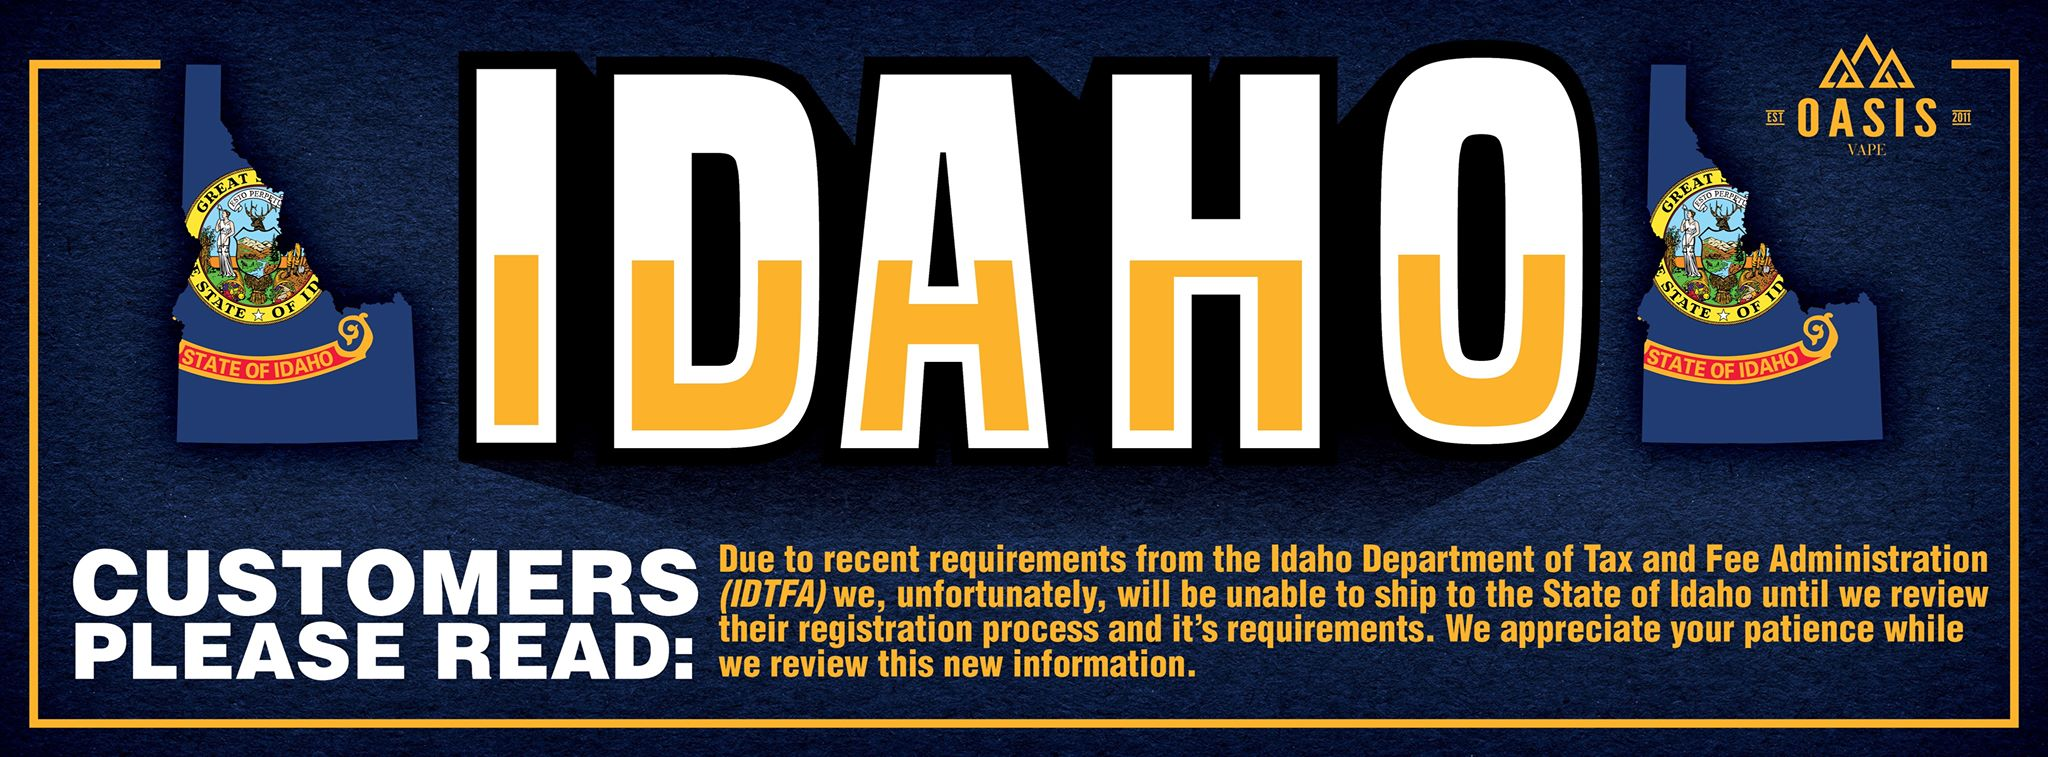 IDAHO CUSTOMERS: Due to recent requirements from the Idaho Department of Tax and Fee Administration (IDTFA) we, unfortunately, will be unable to ship to the State of Idaho until we review their registration process and it's requirements. We appreciate you